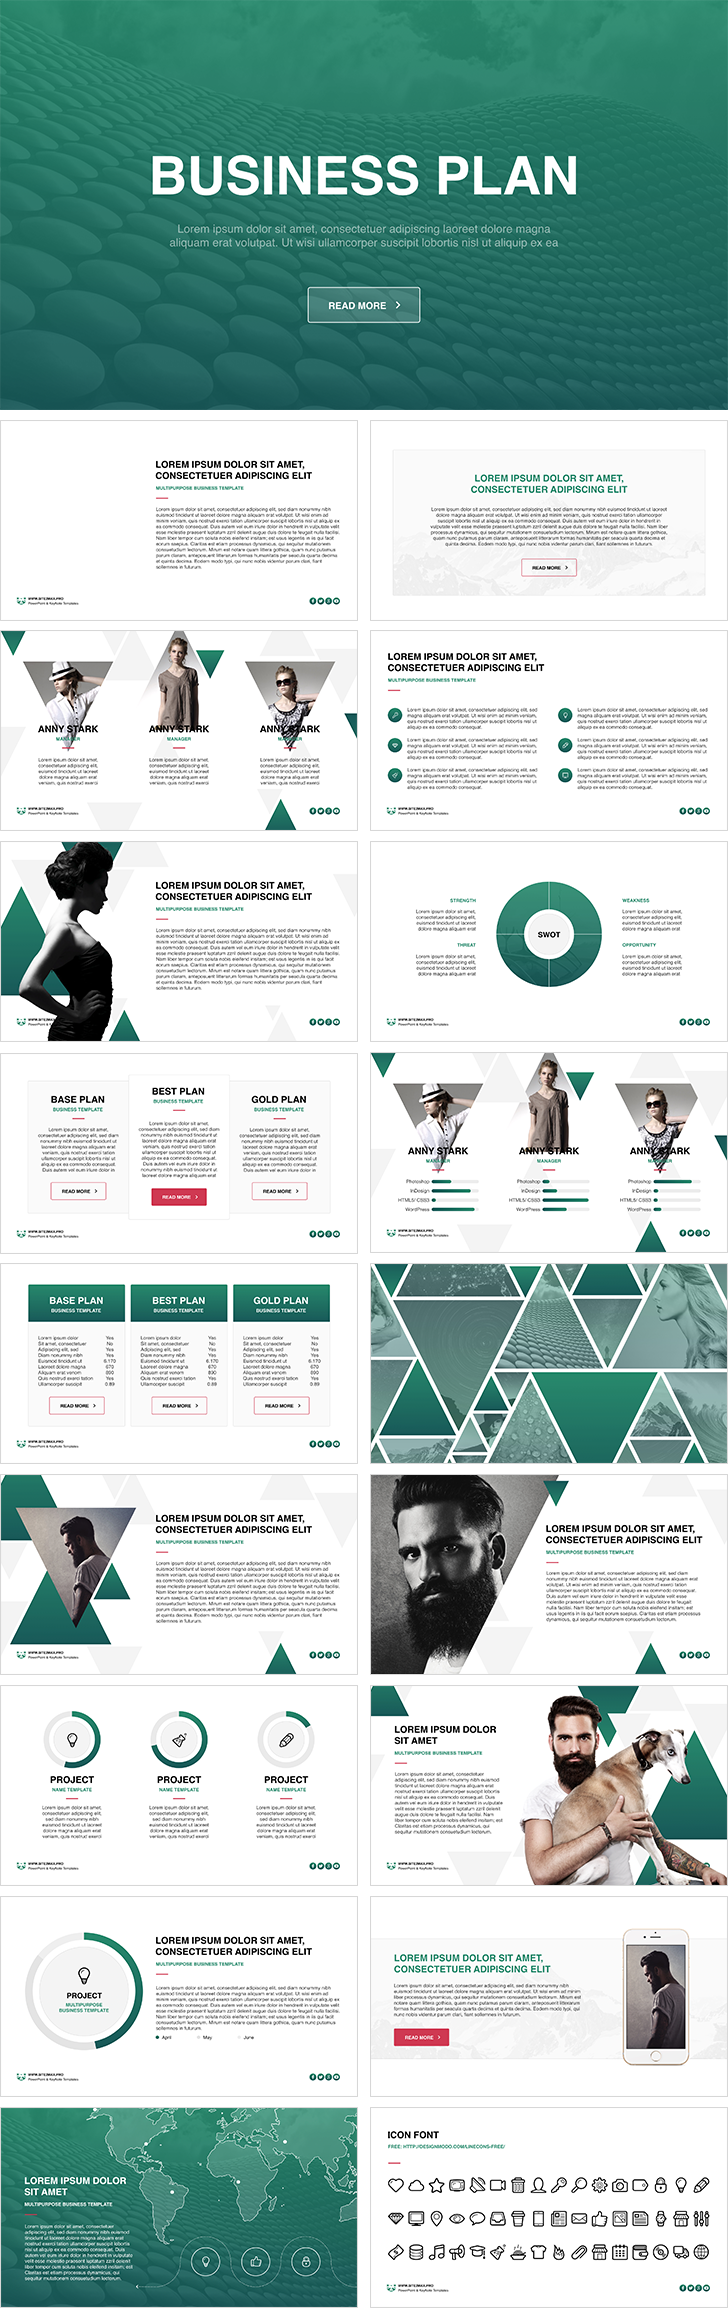 Business plan free powerpoint template download free business plan free powerpoint template wajeb Gallery